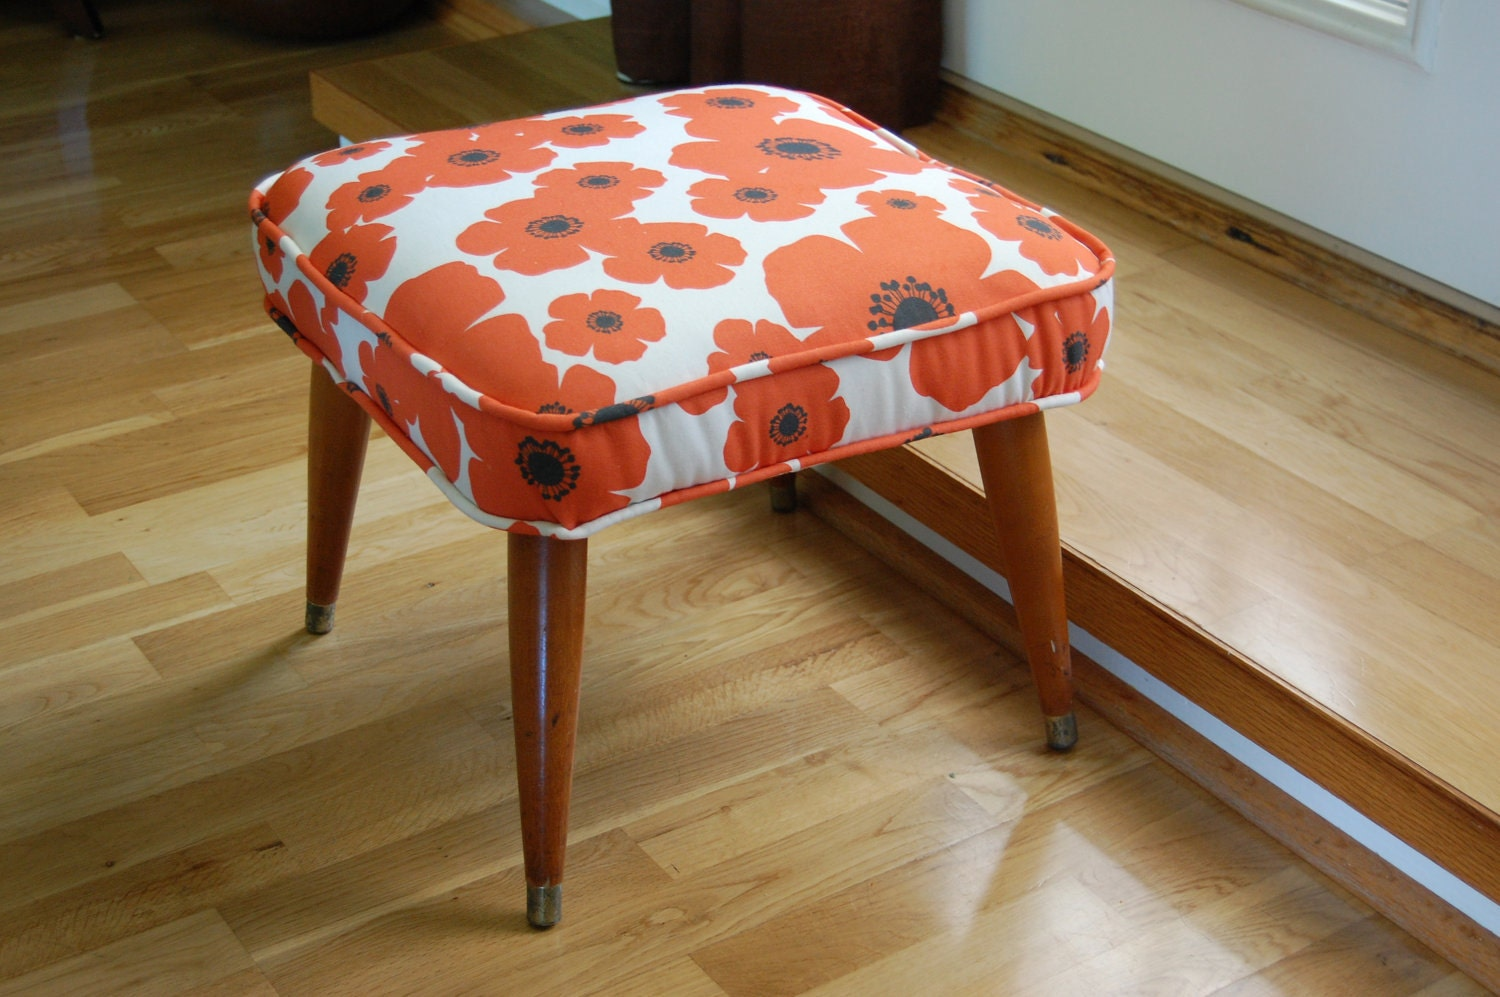 Mid Century Modern Up Cycled Footstool / Ottoman in Mod Orange Poppy Floral